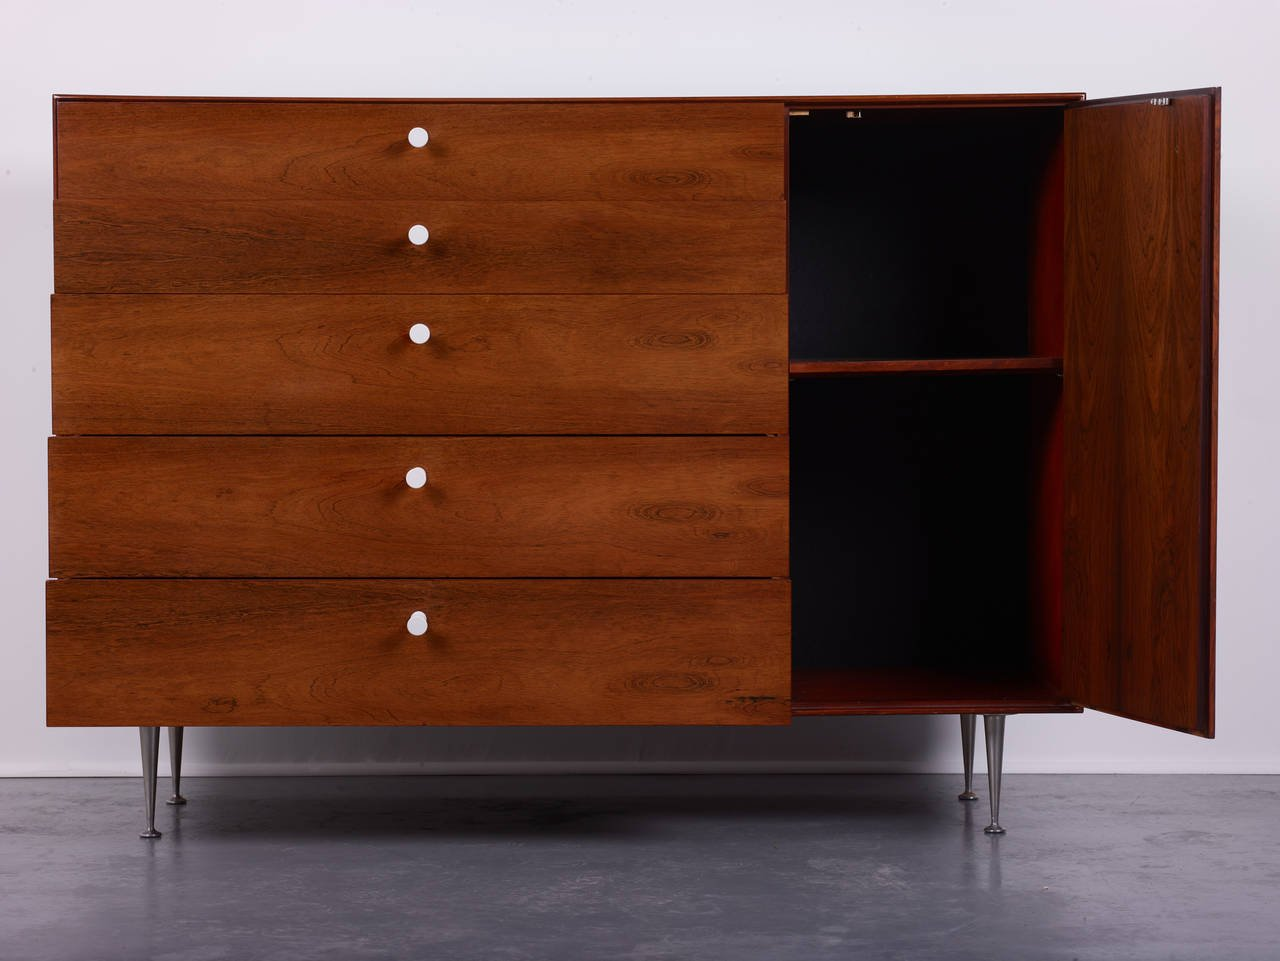 George Nelson & Associates Cabinet Model 5245 for Herman Miller, 1952 - The Exchange Int